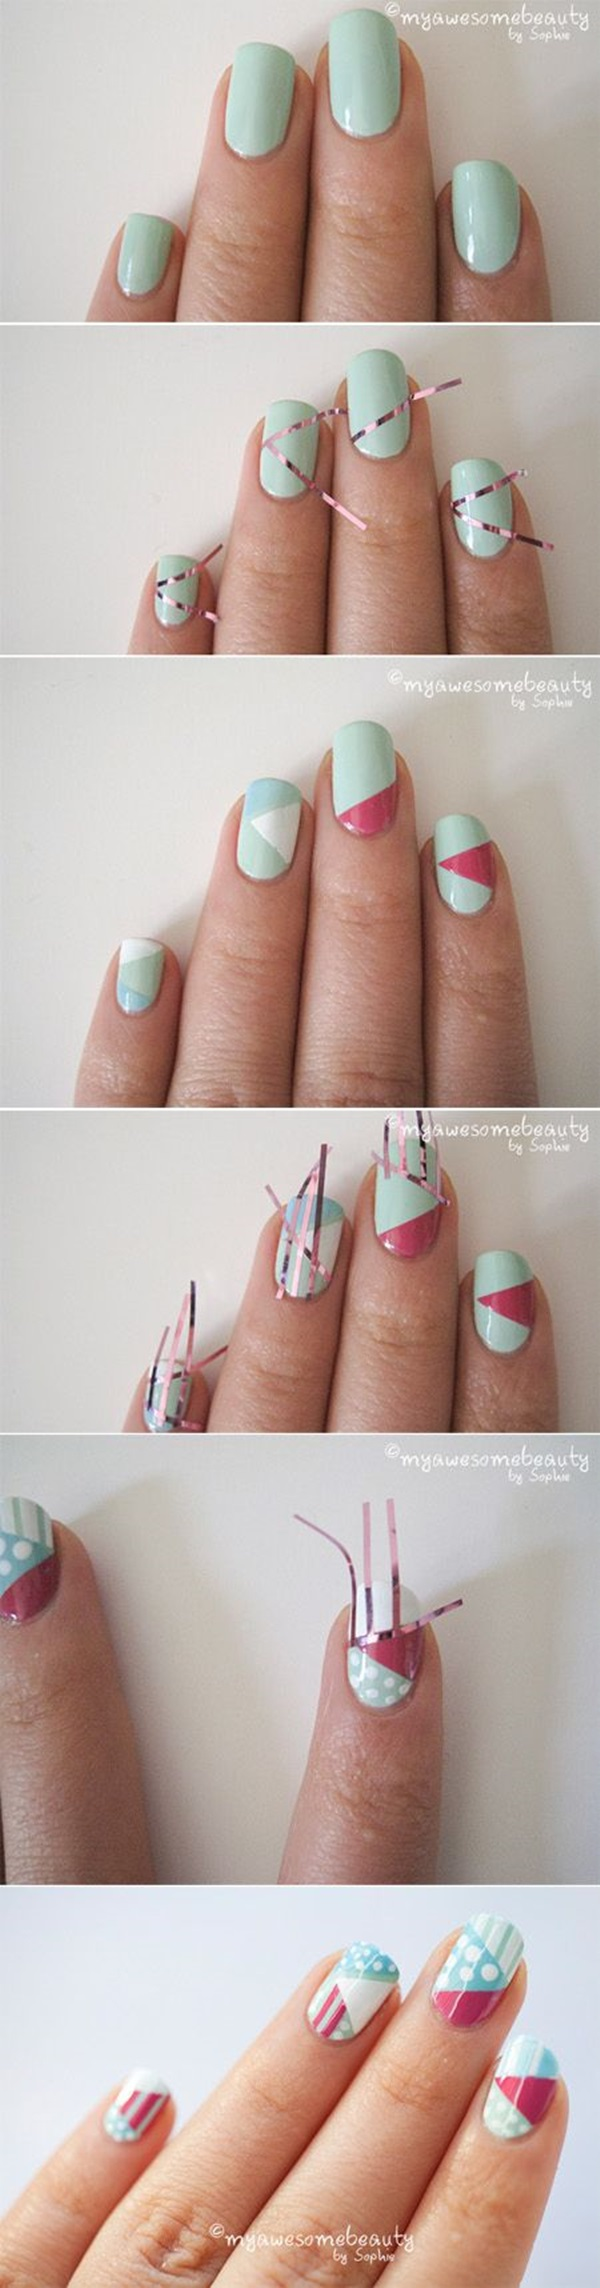 DIY Nail art designs (39)